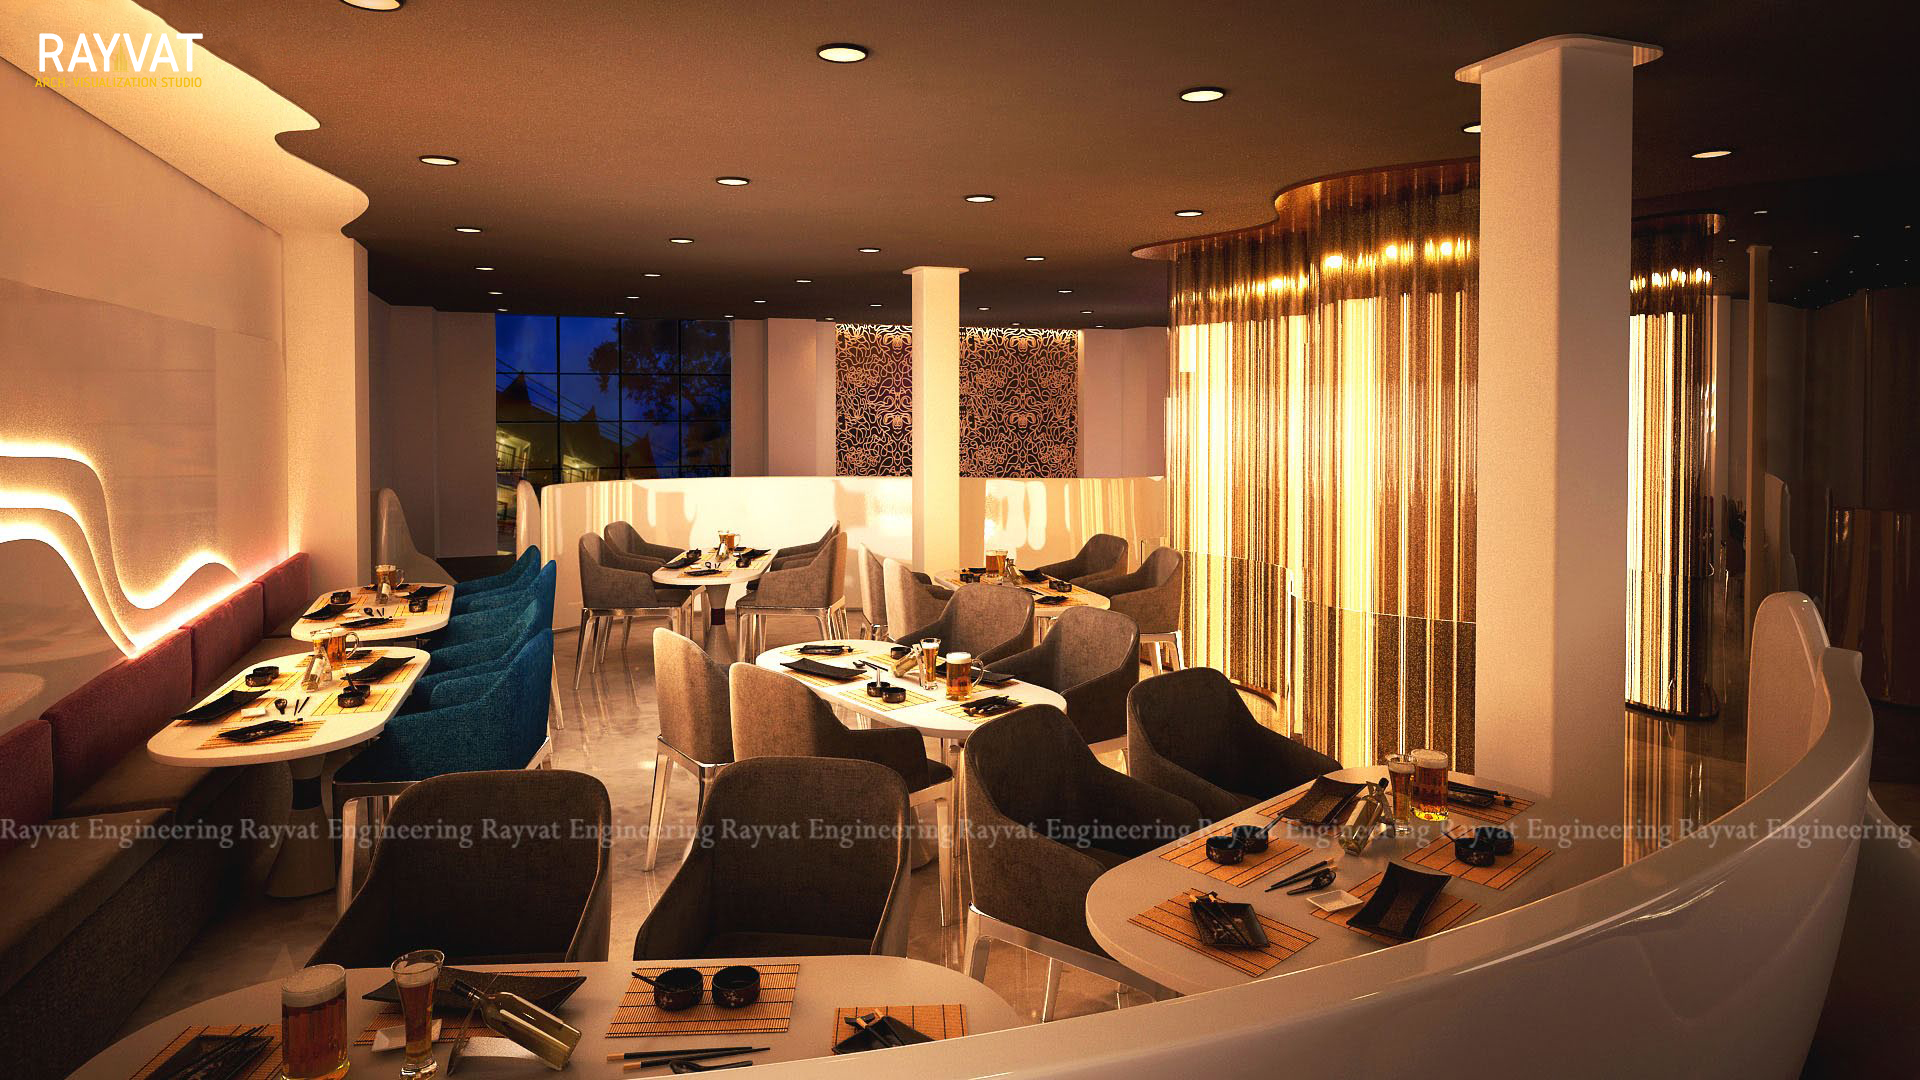 3D Rendering Services New York